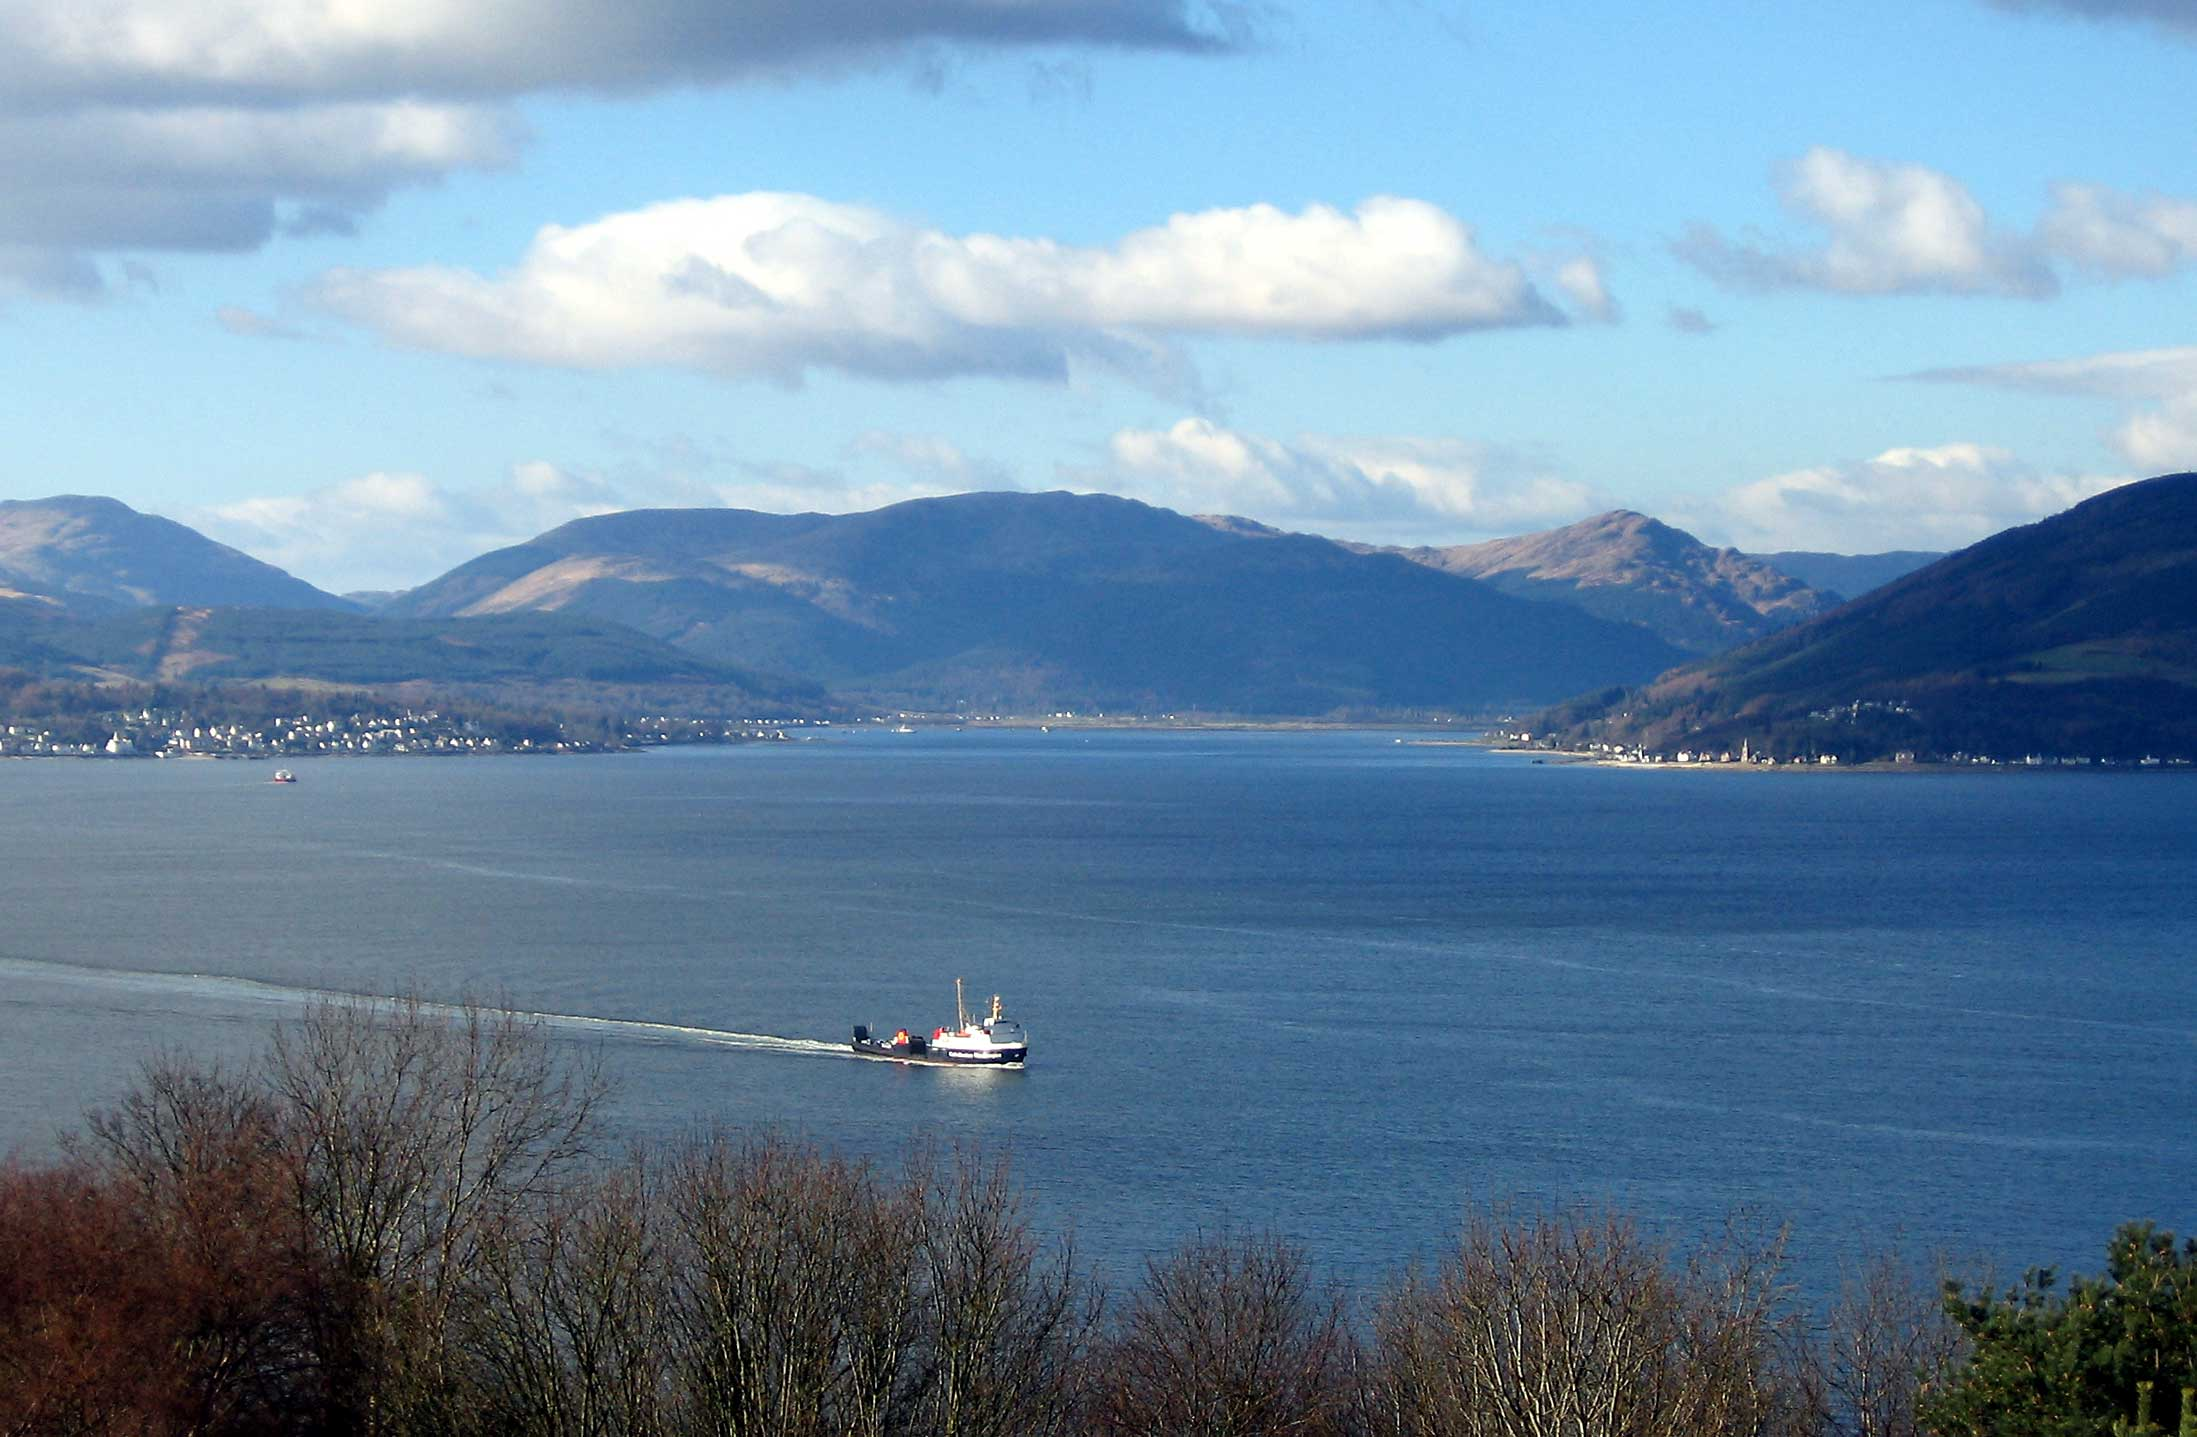 The Holy Loch seen across the upper Firth of Clyde from Gourock, with Hunter's Quay to the left and Strone to the right, with the Caledonian MacBrayne ferry <!-- MV --> arriving from Dunoon.